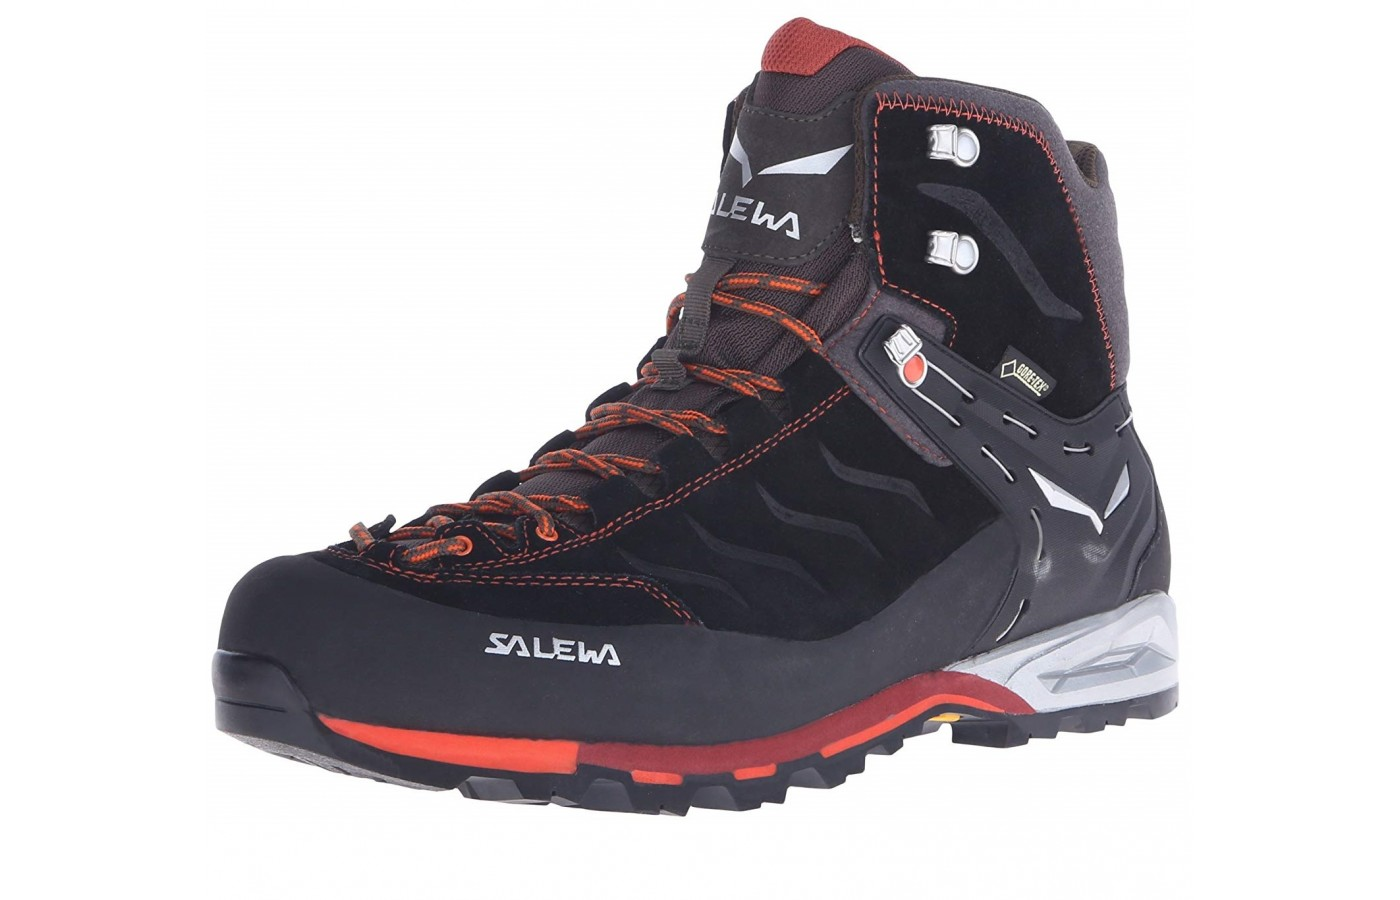 Salewa Mountain Trainer Mid GTX Hiking Boot Side